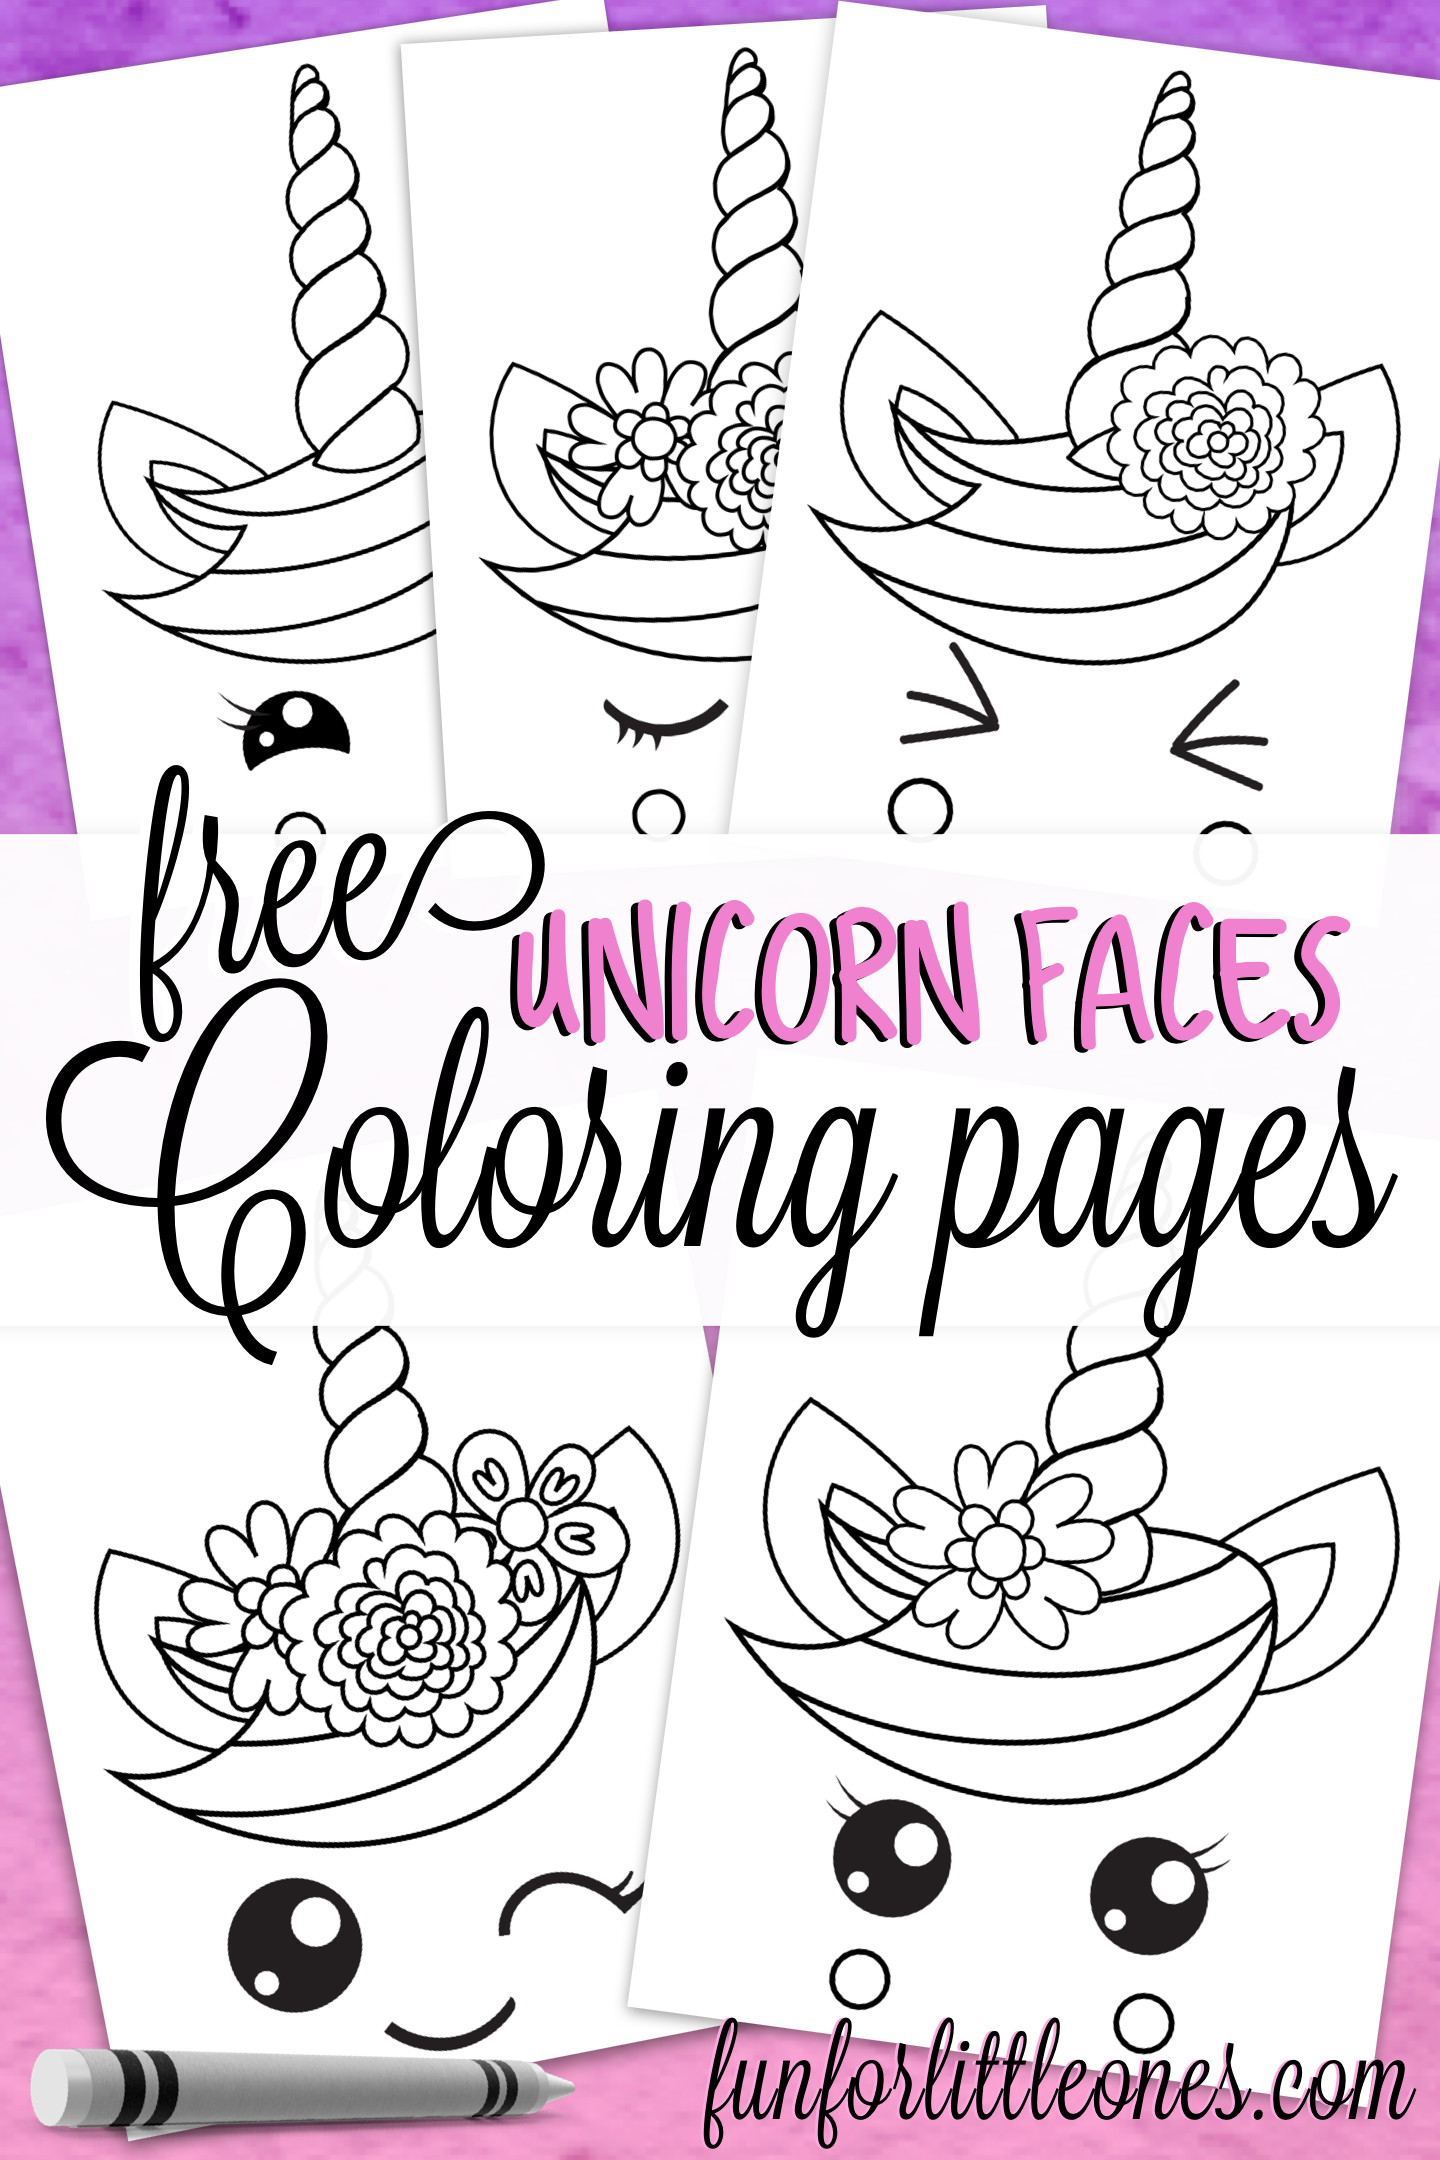 Unicorn Faces Coloring Pages For Kids